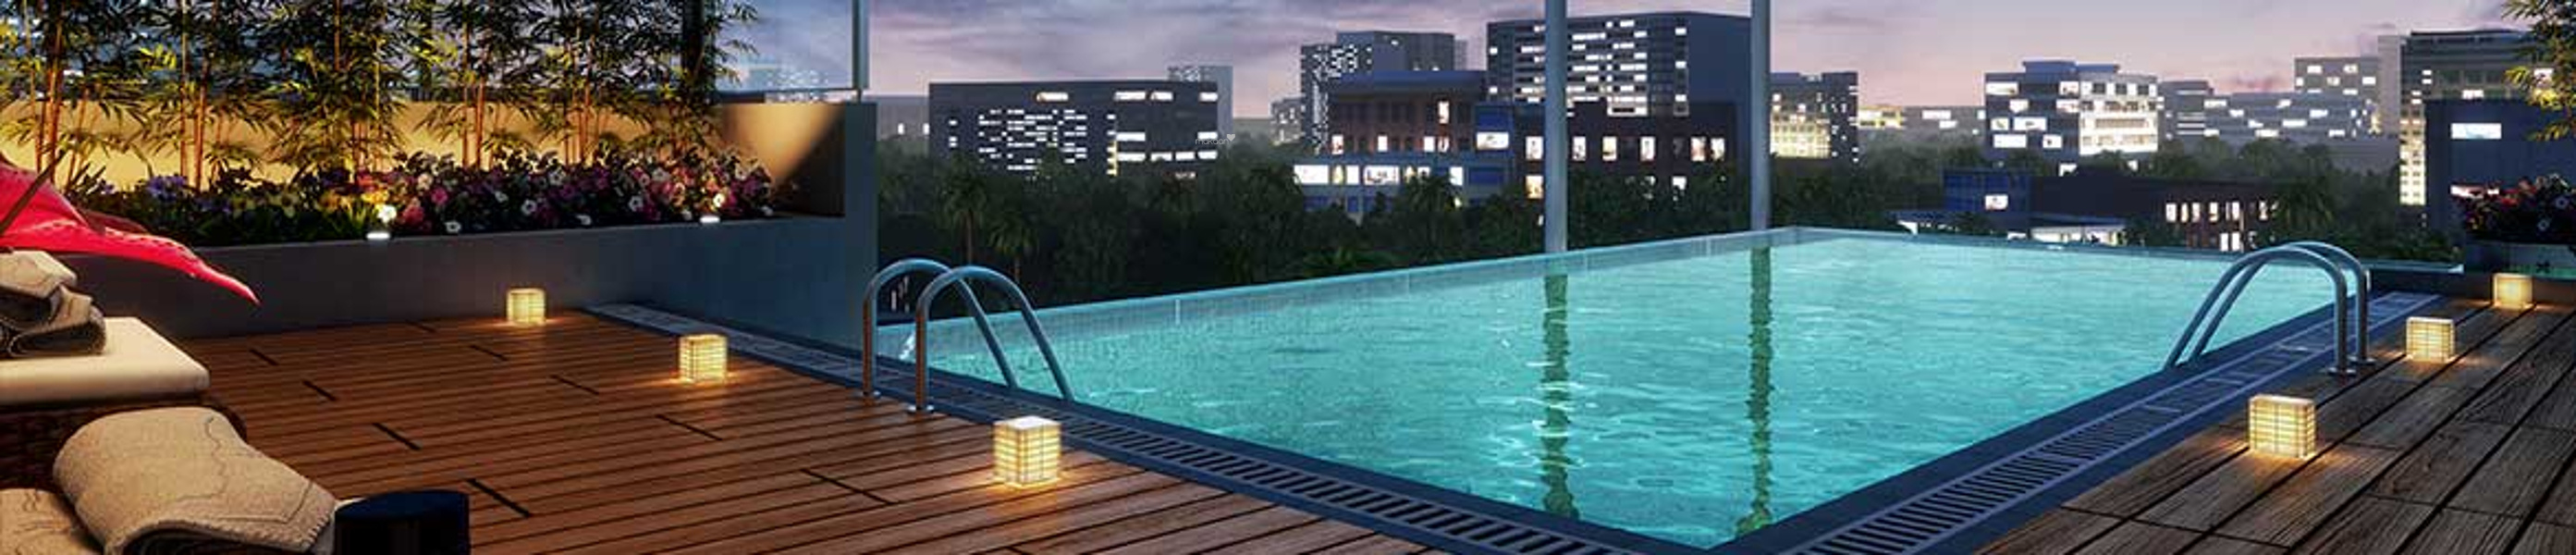 1050 sq ft 2BHK 2BHK+3T (1,050 sq ft) Property By Shreedham Consultancy In Lake Homes, Powai